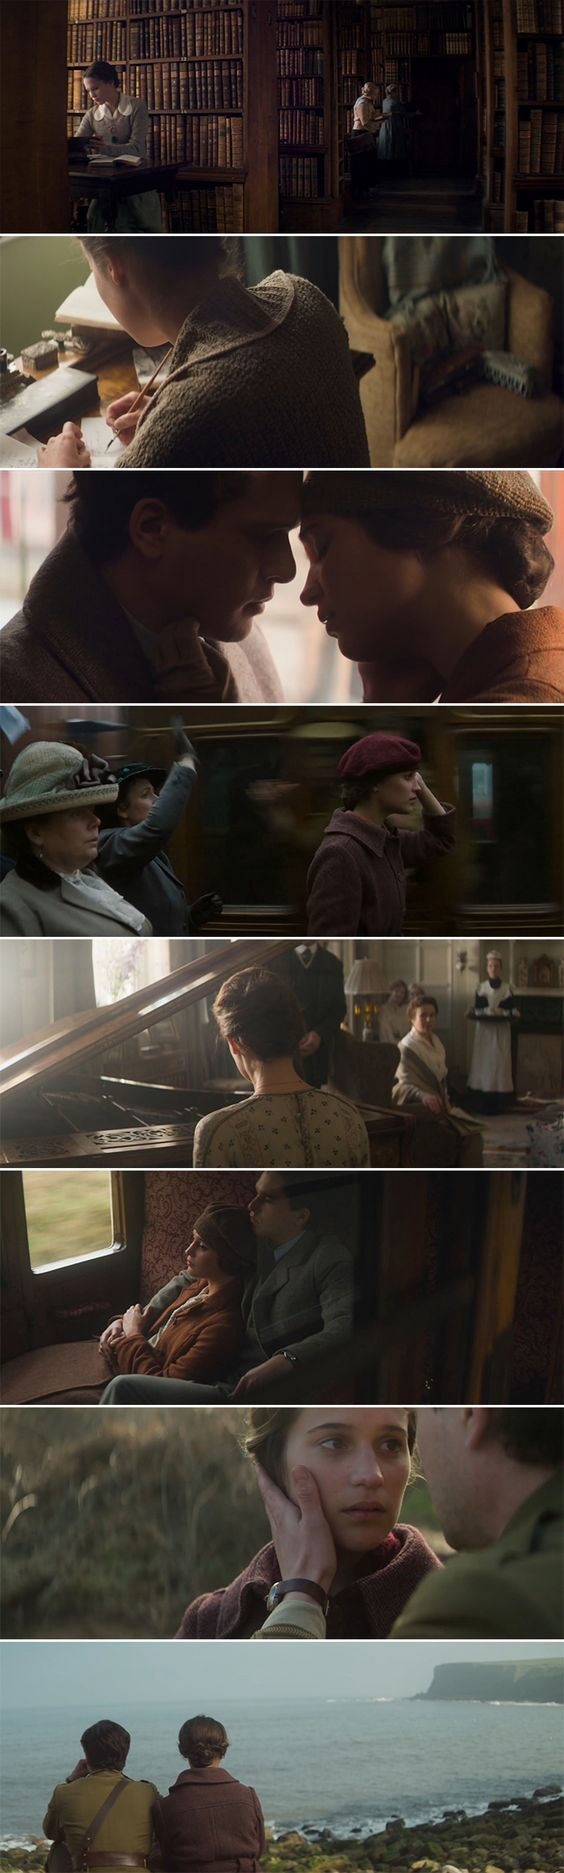 """Absolutely incredible cinematography in """"The testament of youth"""". Each frame feels like a poem."""